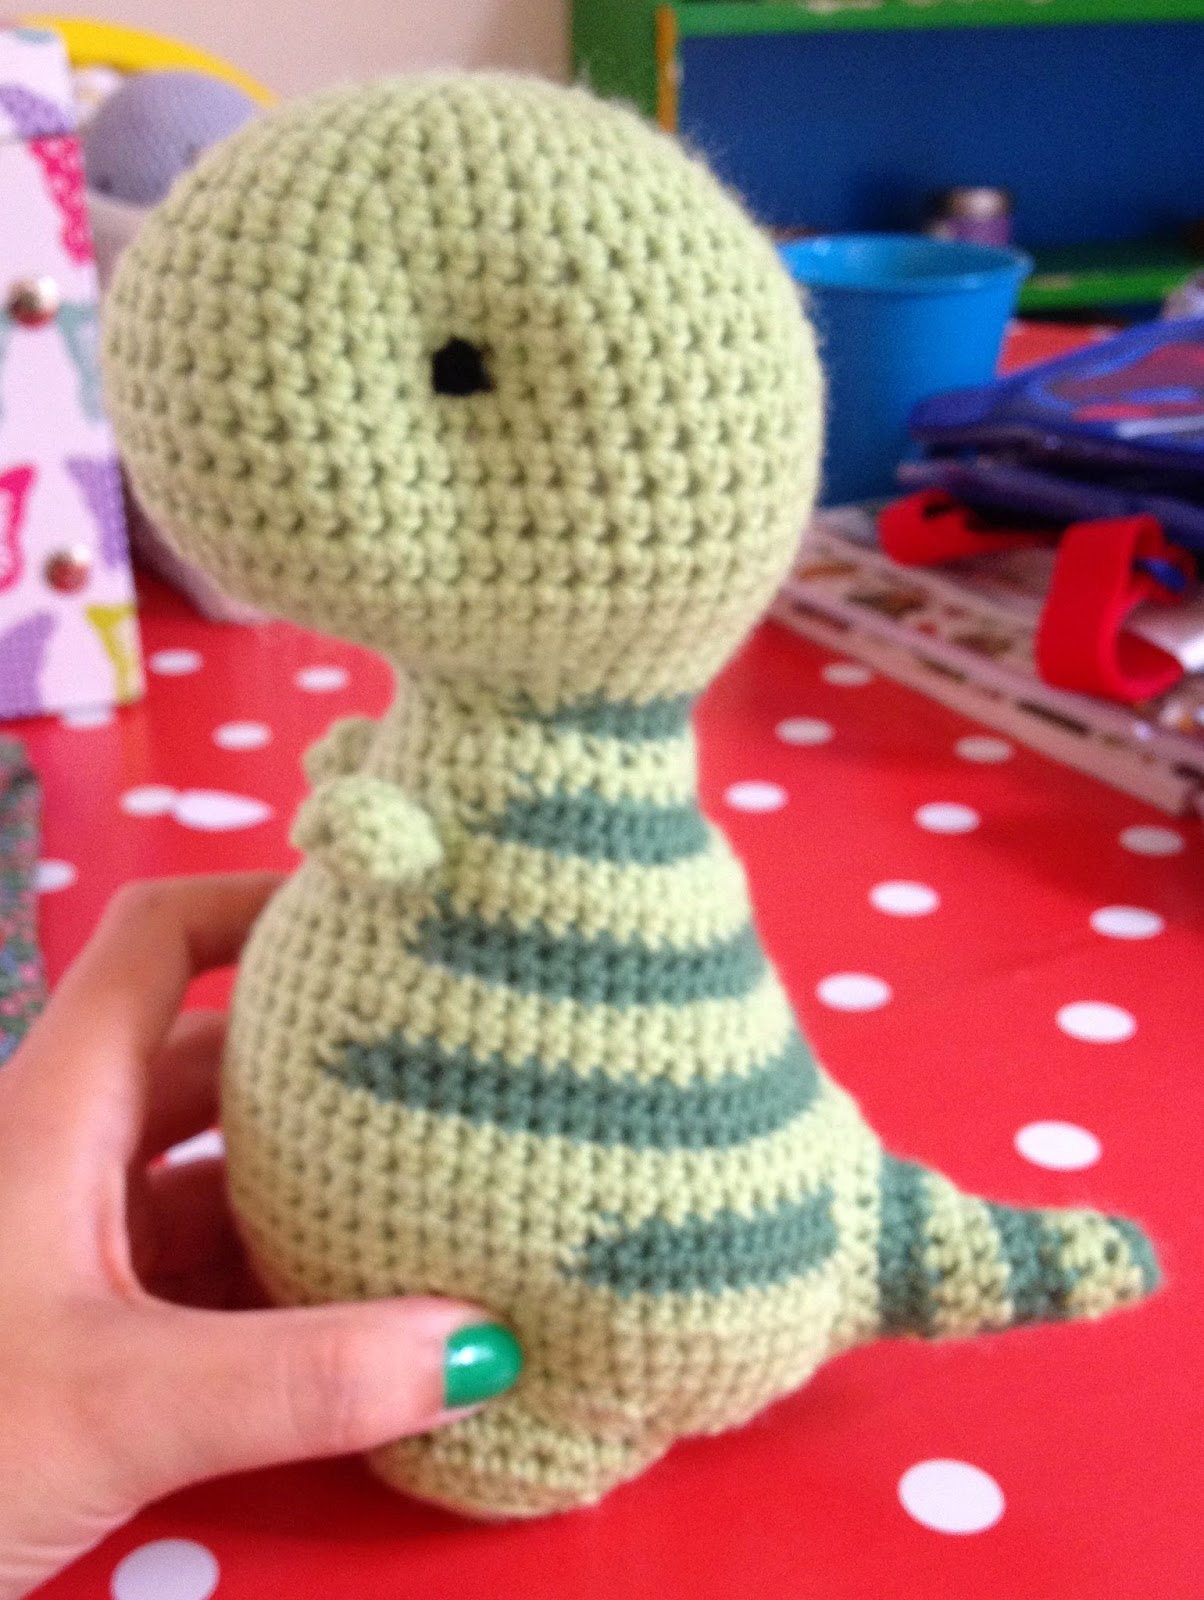 The Perfect Hiding Place: A Crochet Dino - Pattern Review